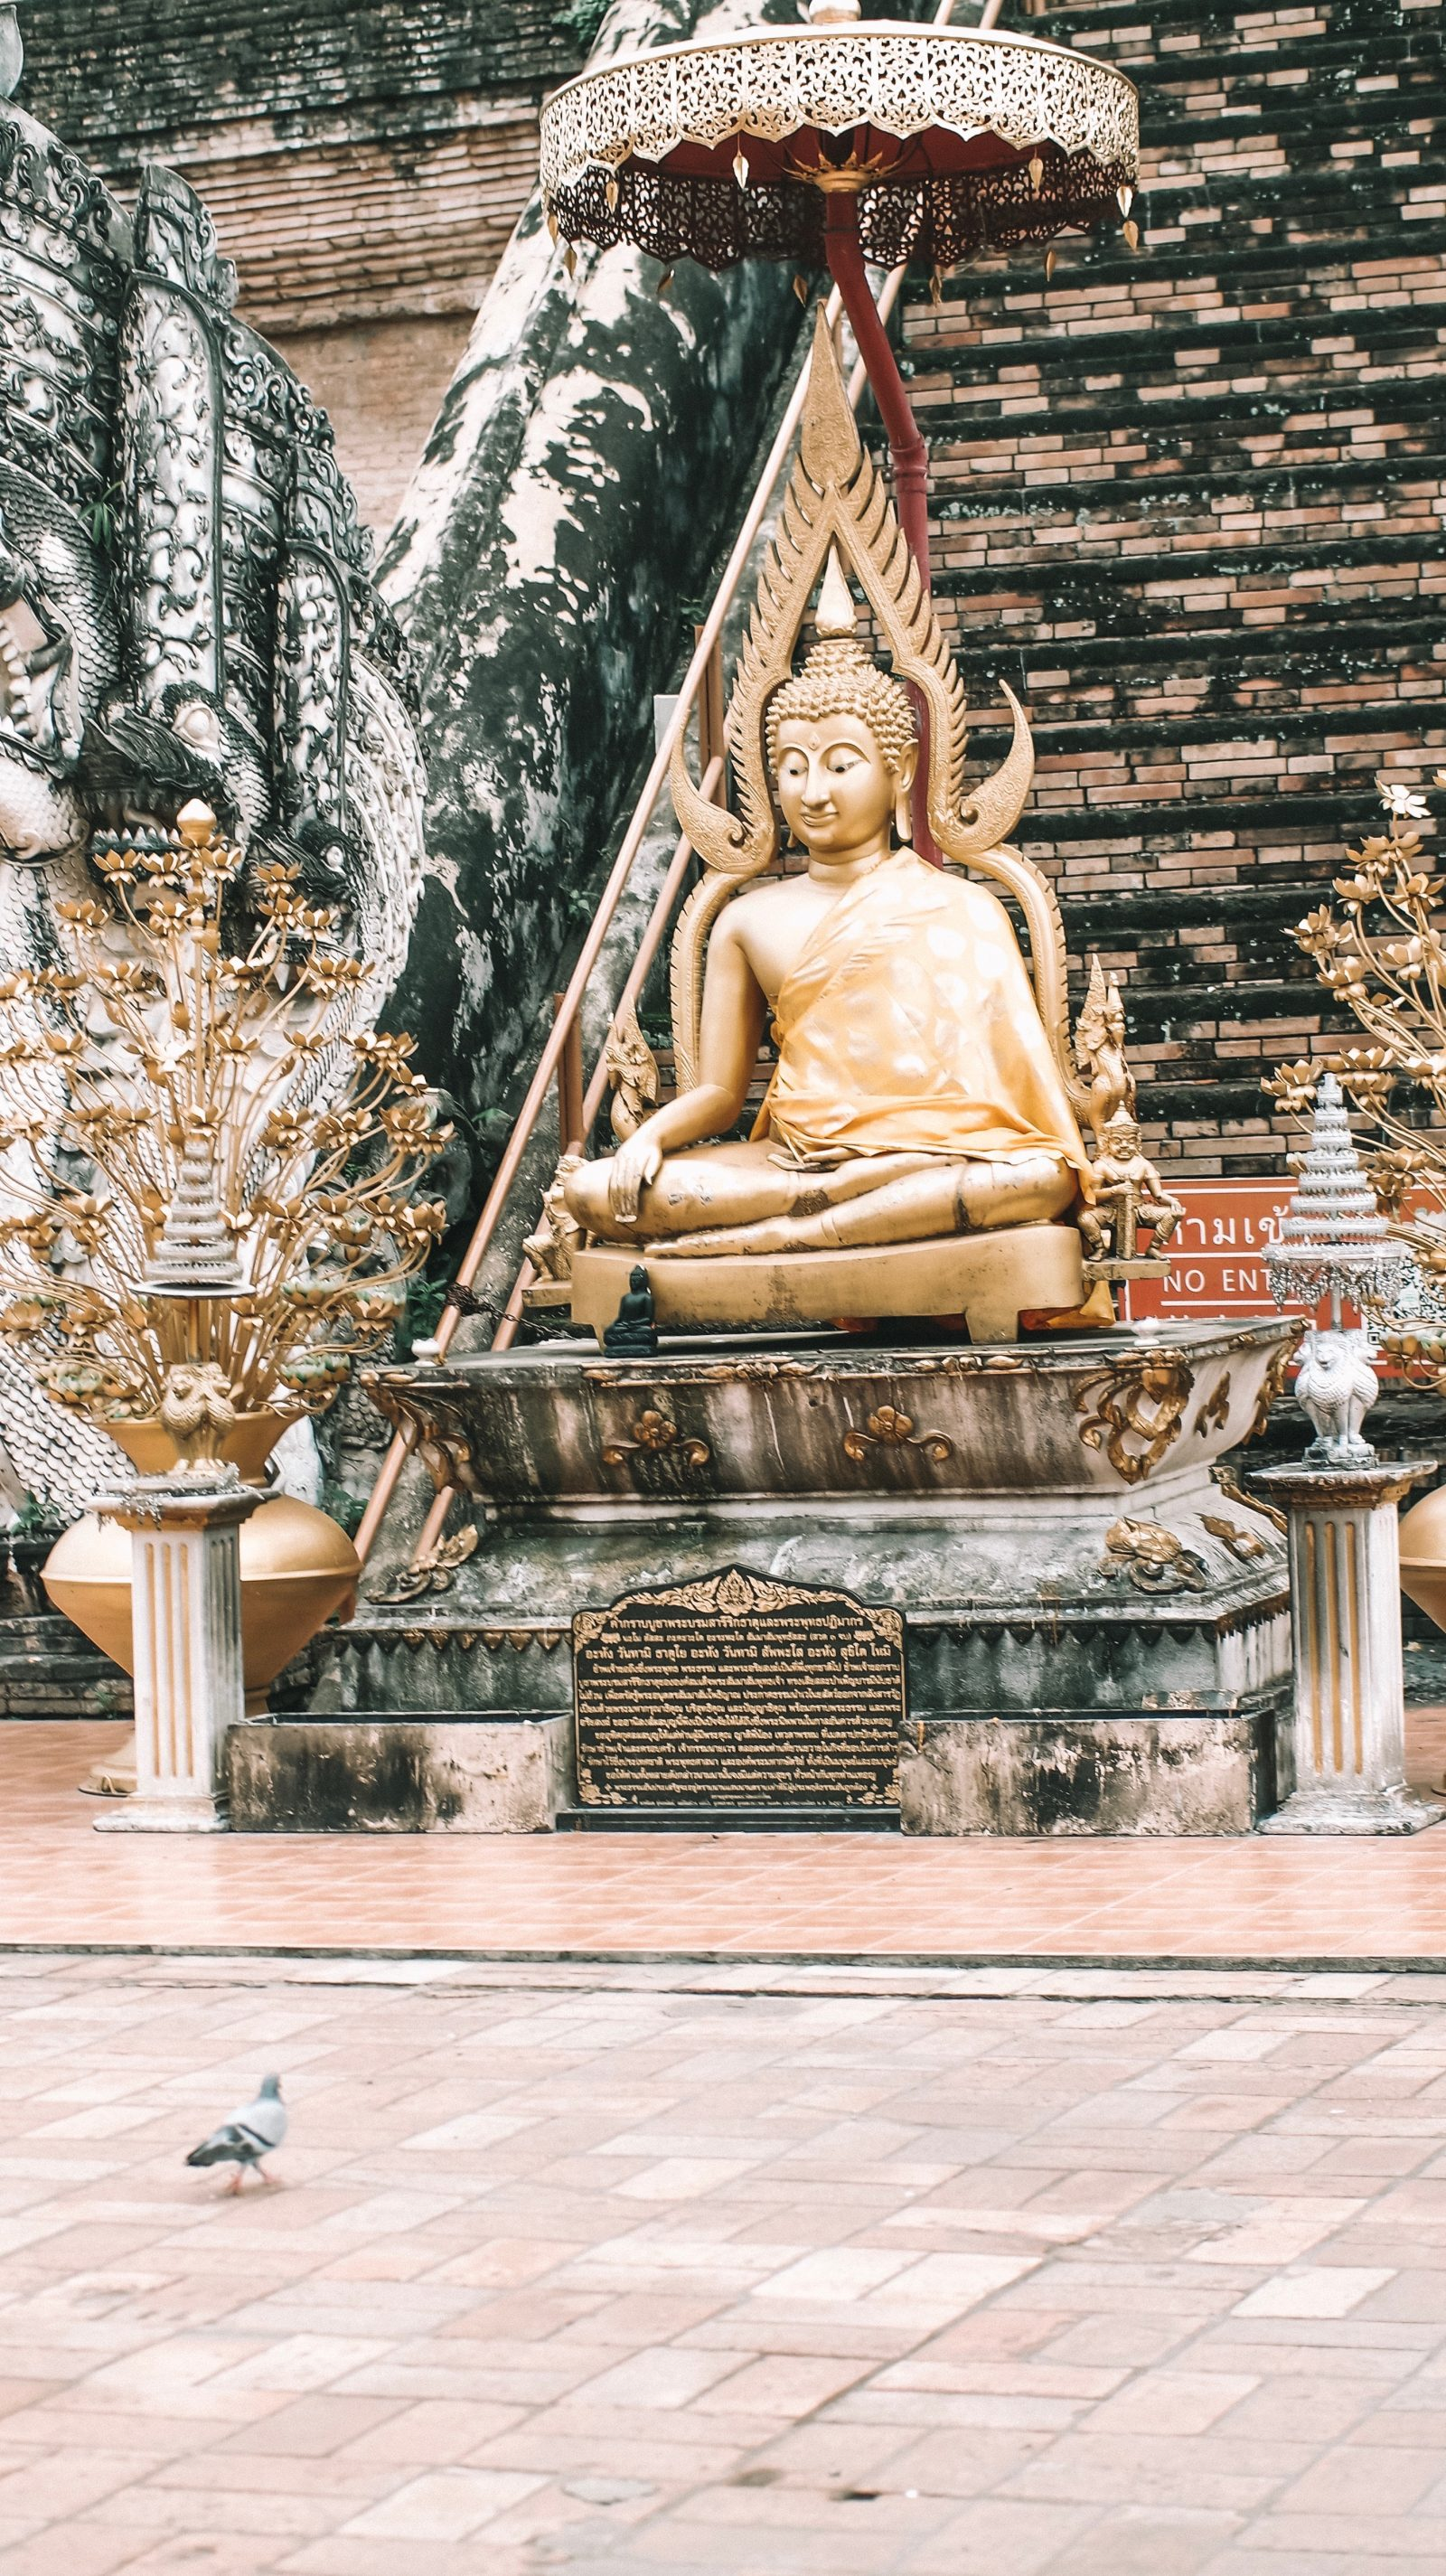 Sightseeing Outfit - Thailand Golden Buddha